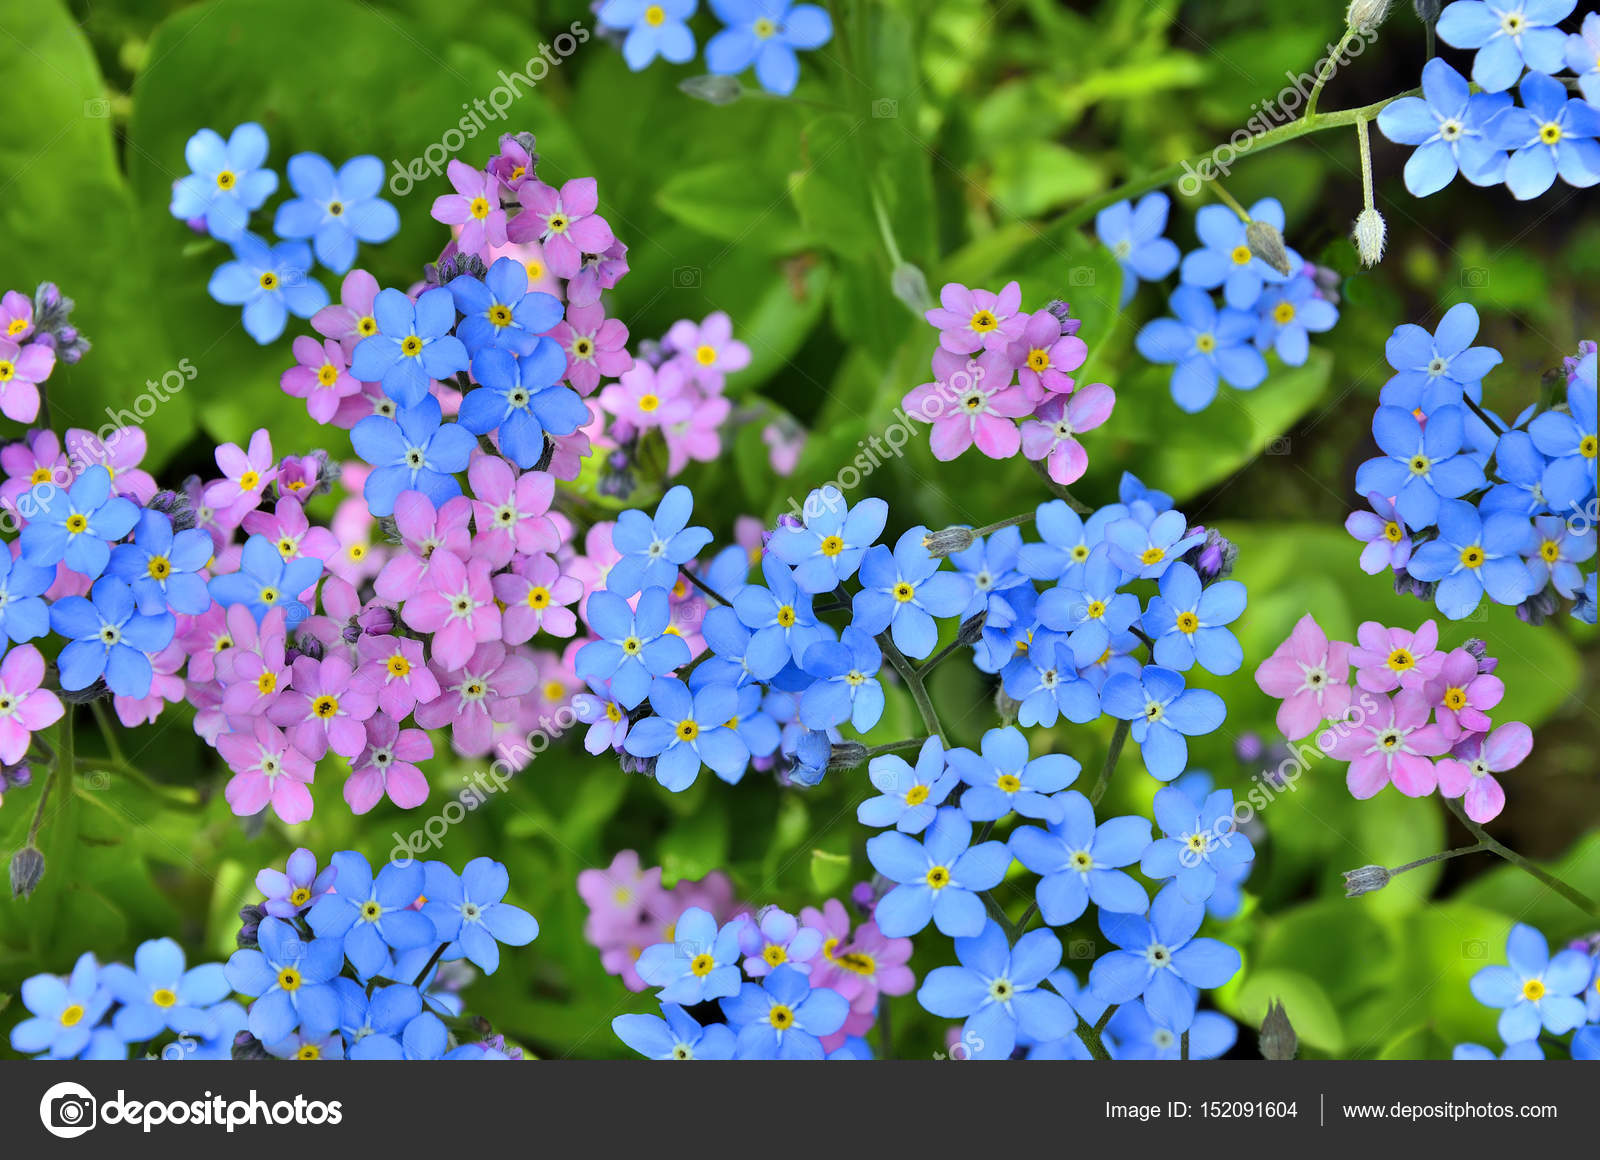 pink and blue forget me not flowers close up stock photo ruvo233 152091604. Black Bedroom Furniture Sets. Home Design Ideas